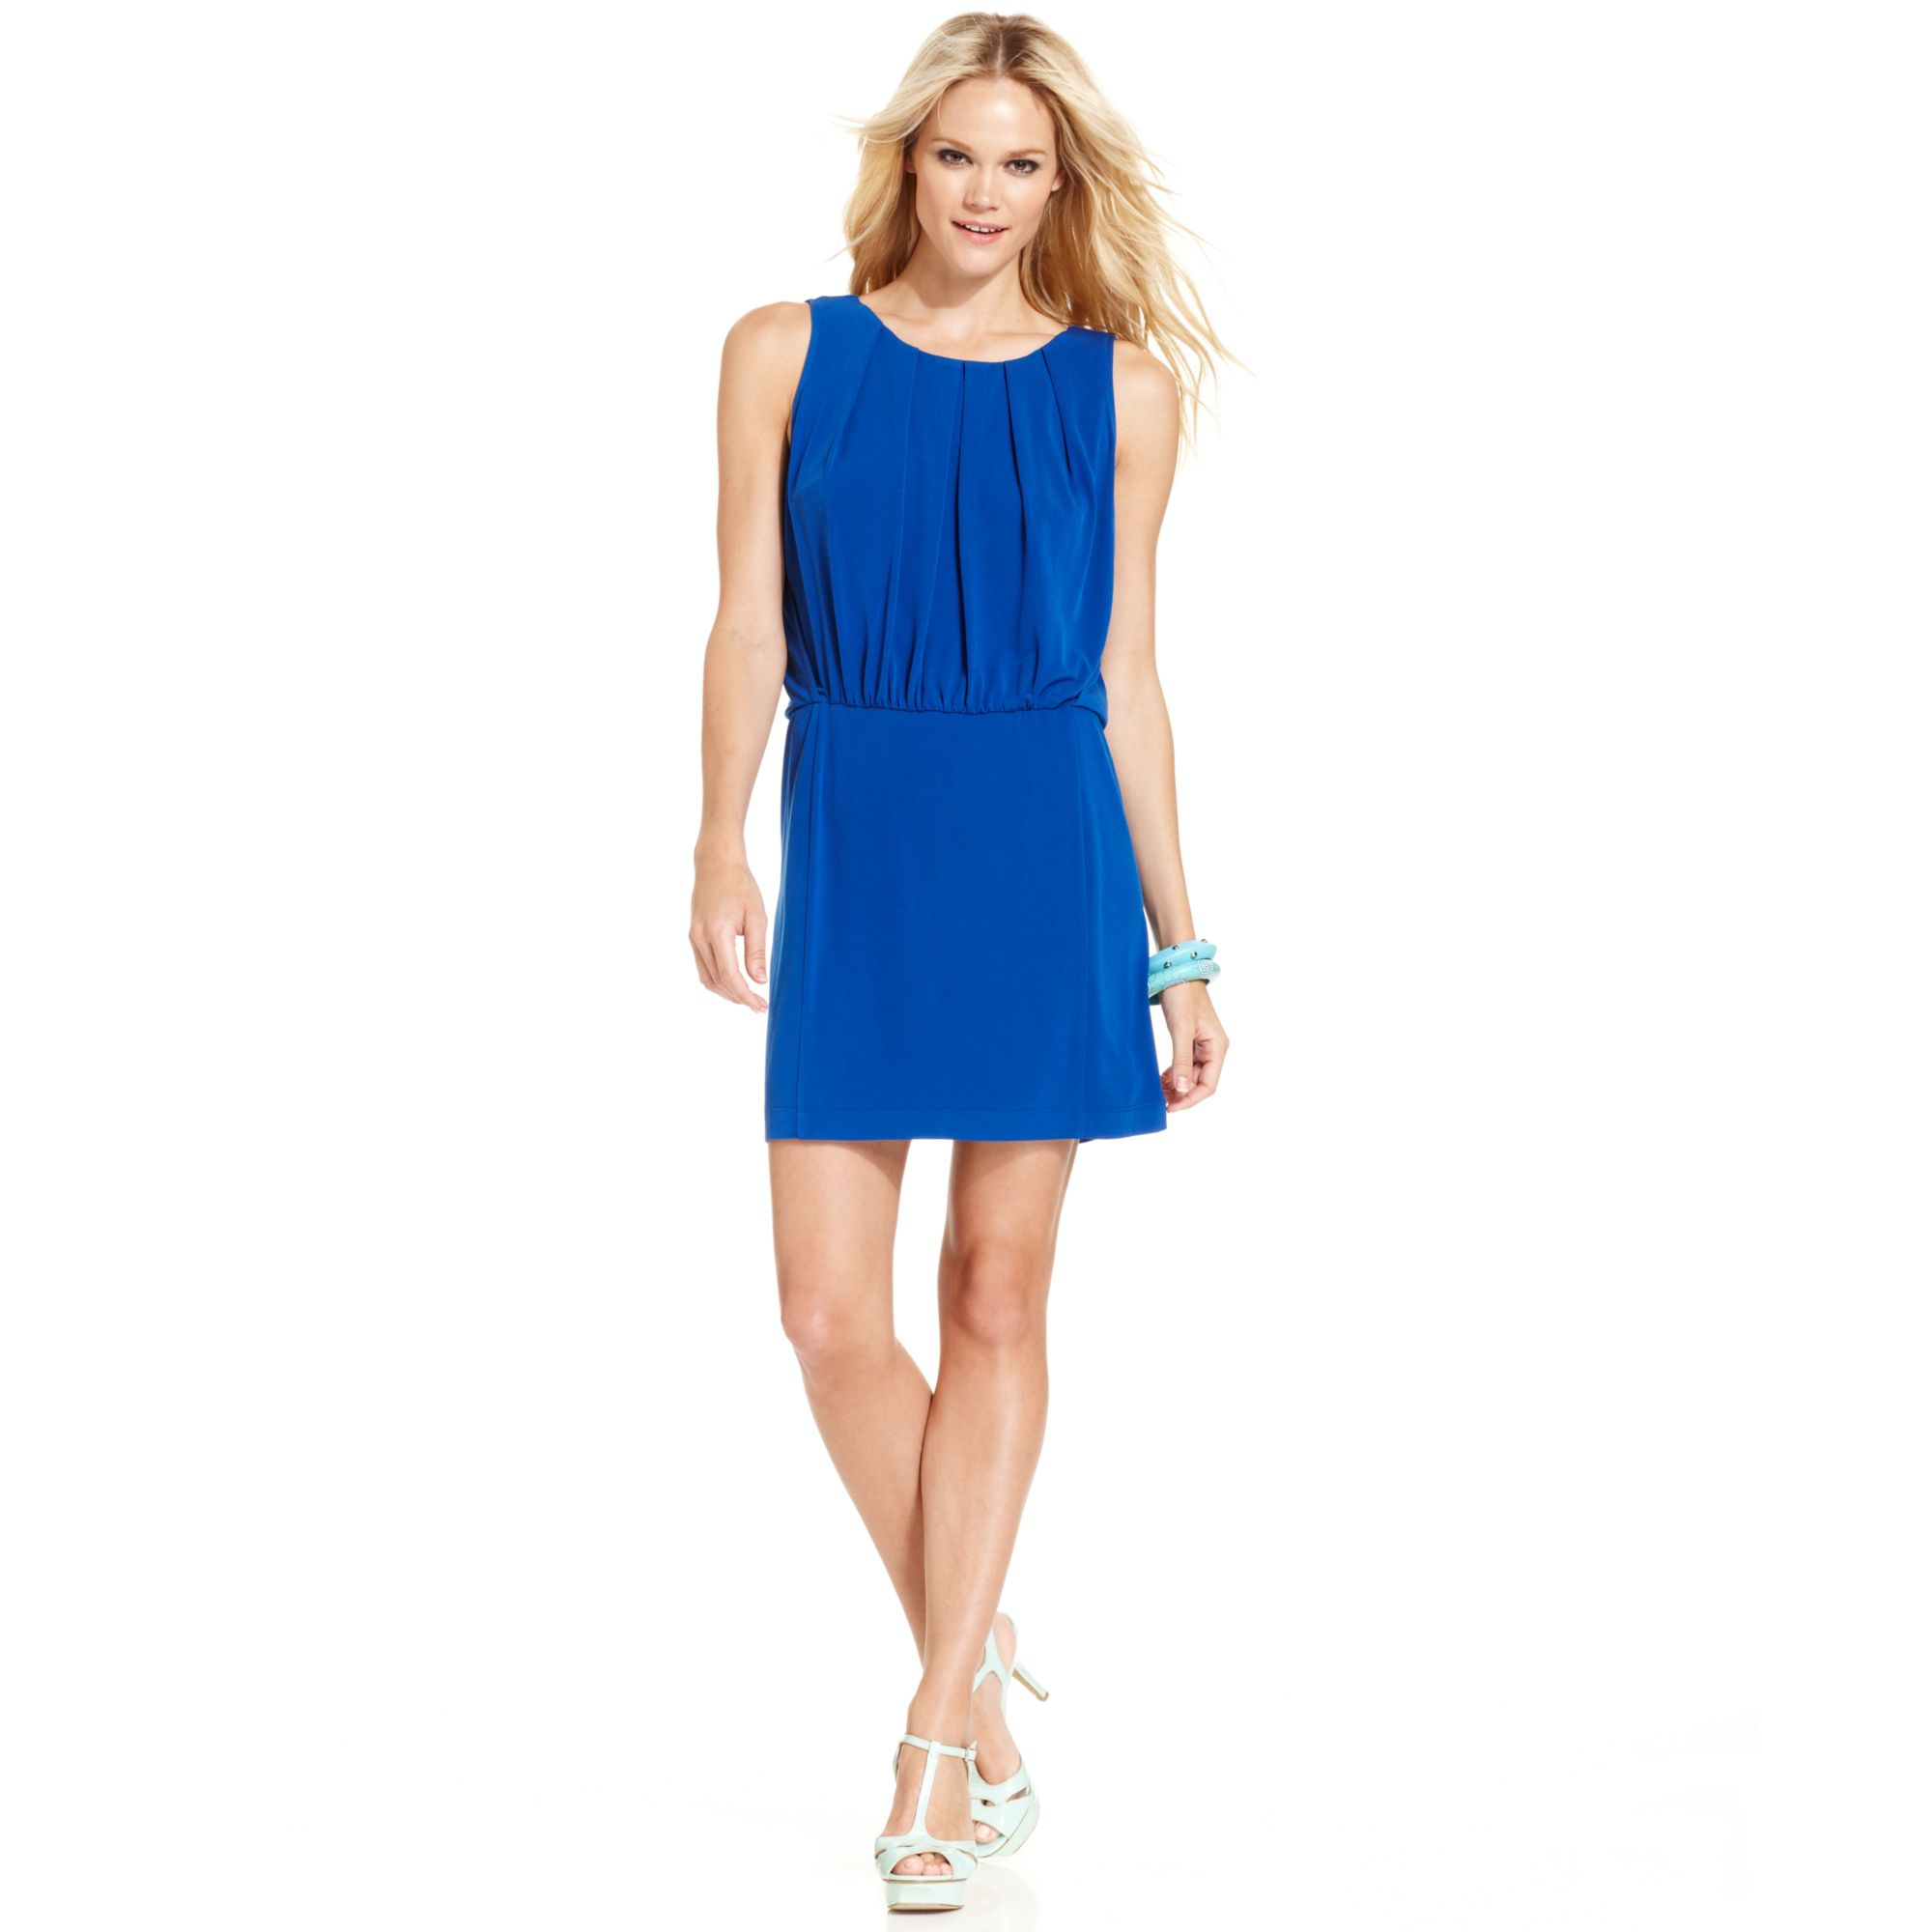 Blue jessica simpson dress